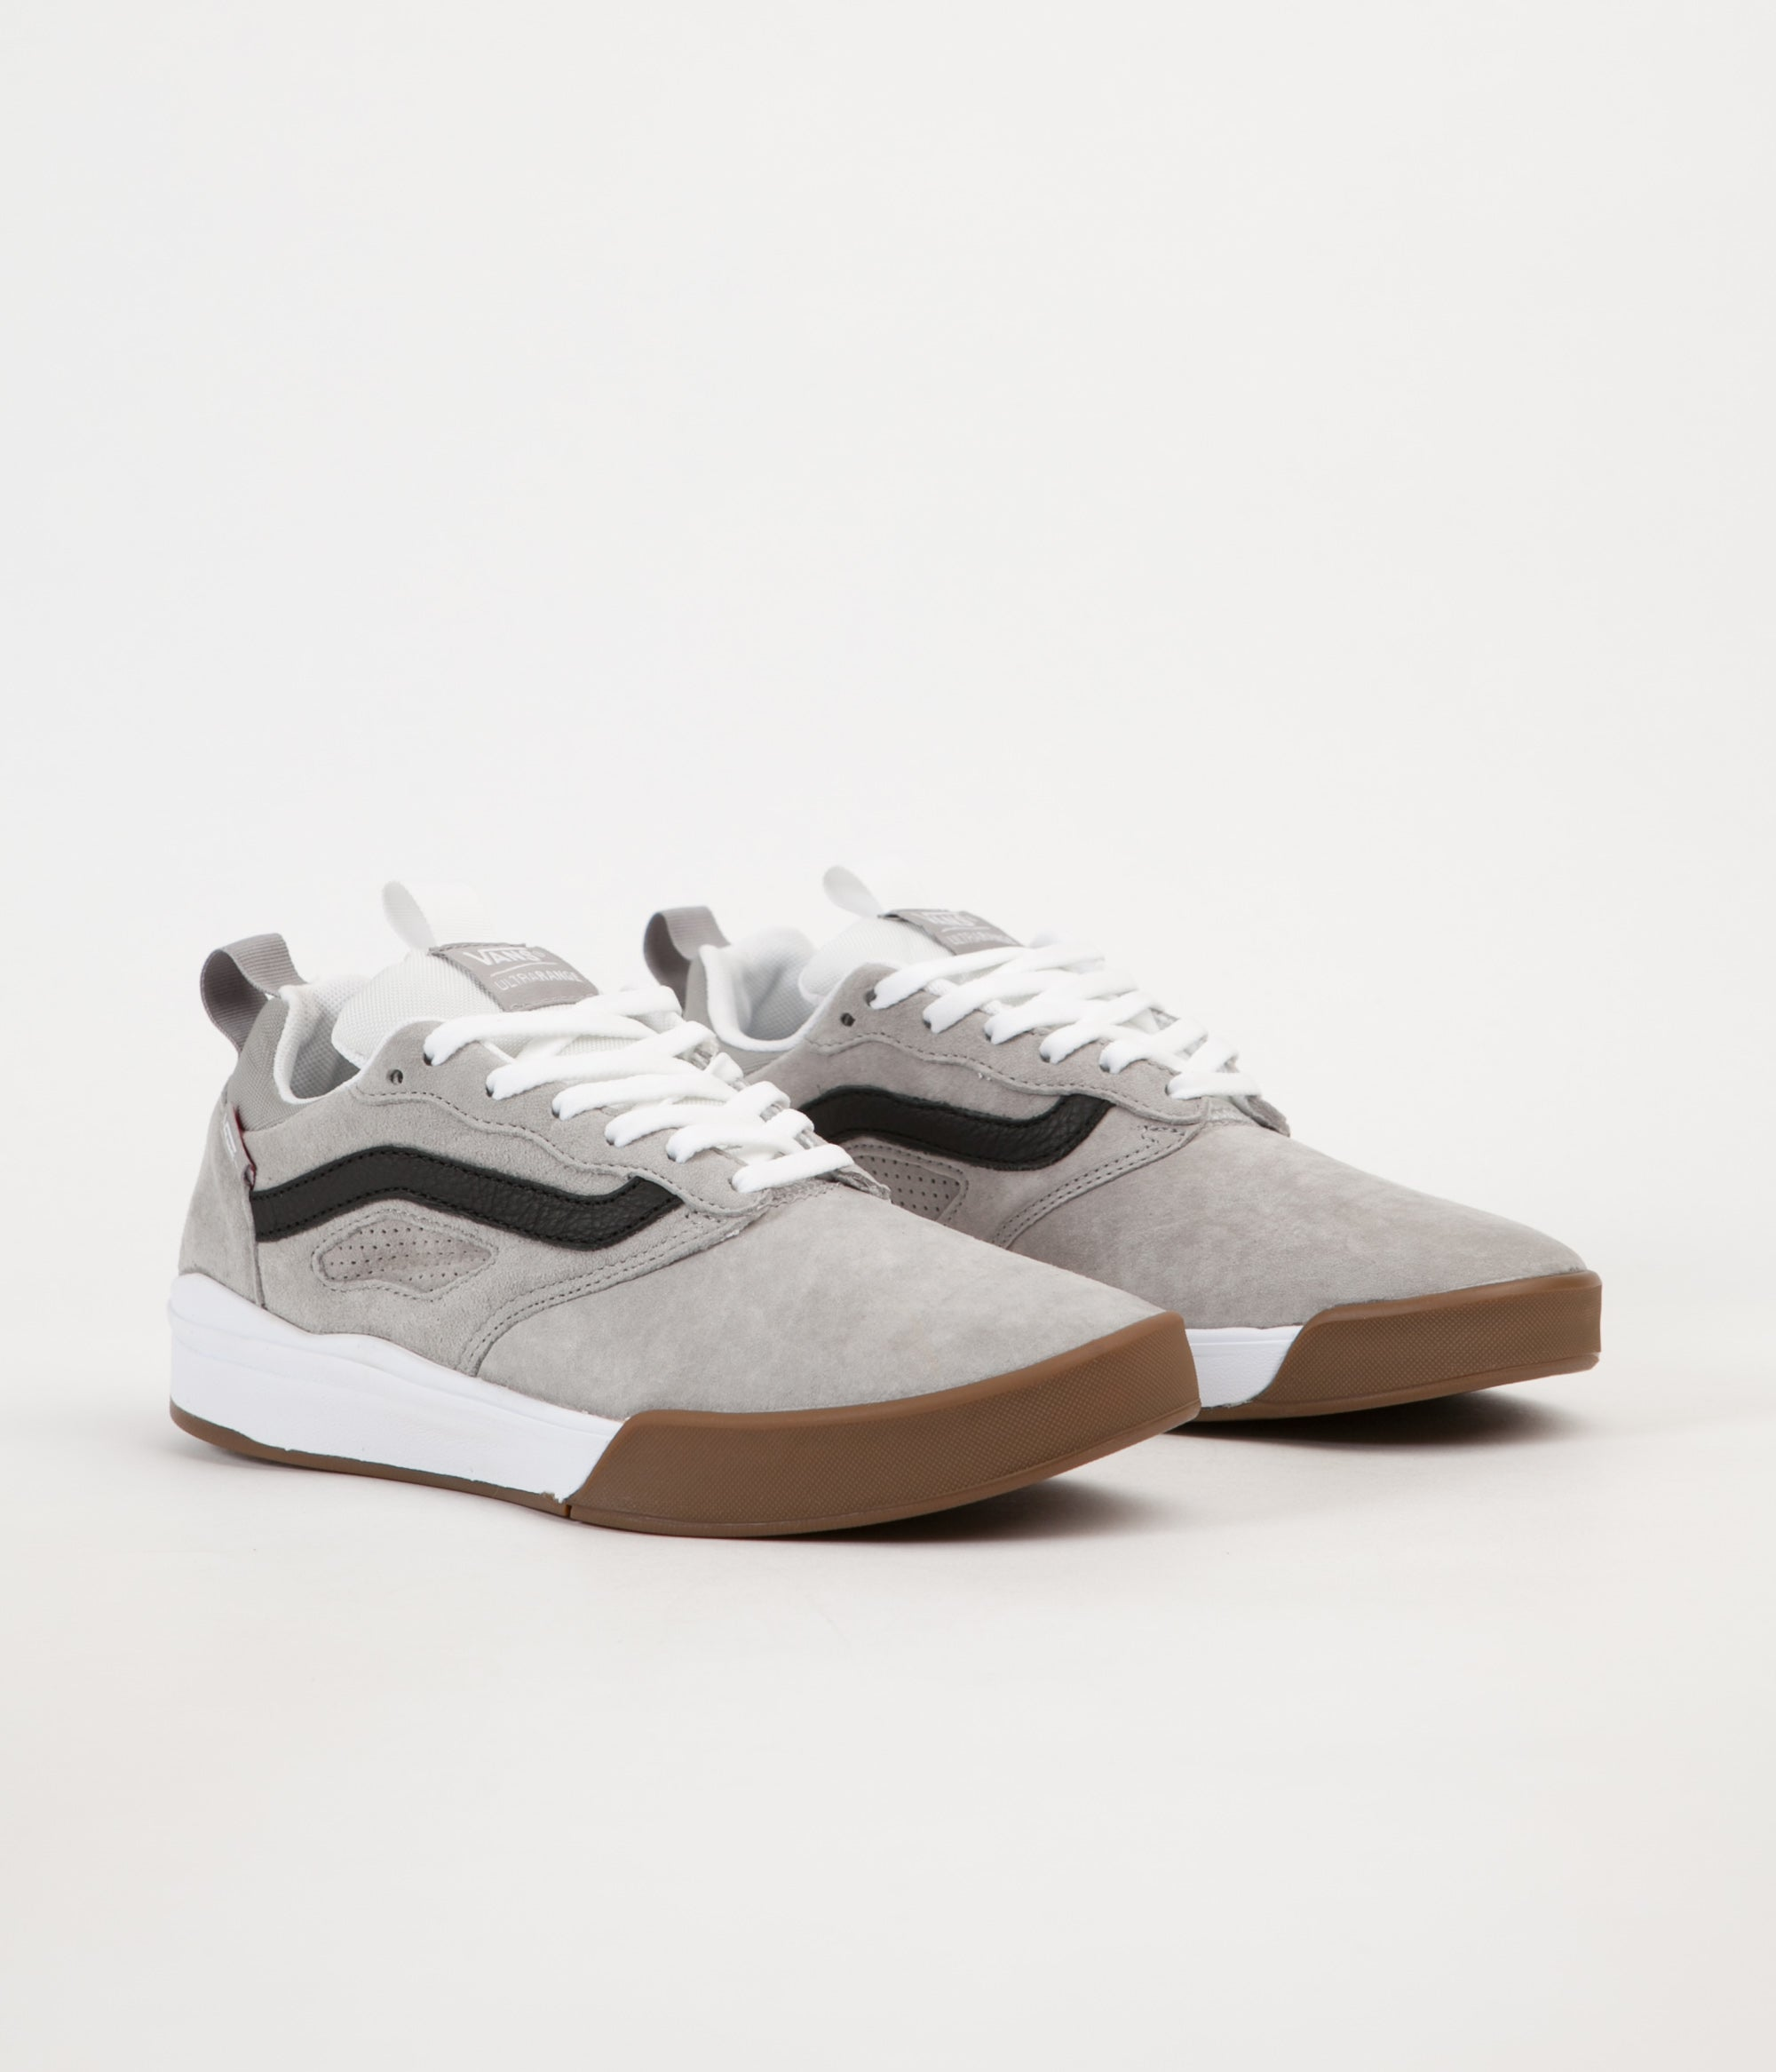 82b8f6bdd54e70 ... Vans Ultrarange Pro Shoes - Drizzle   White ...